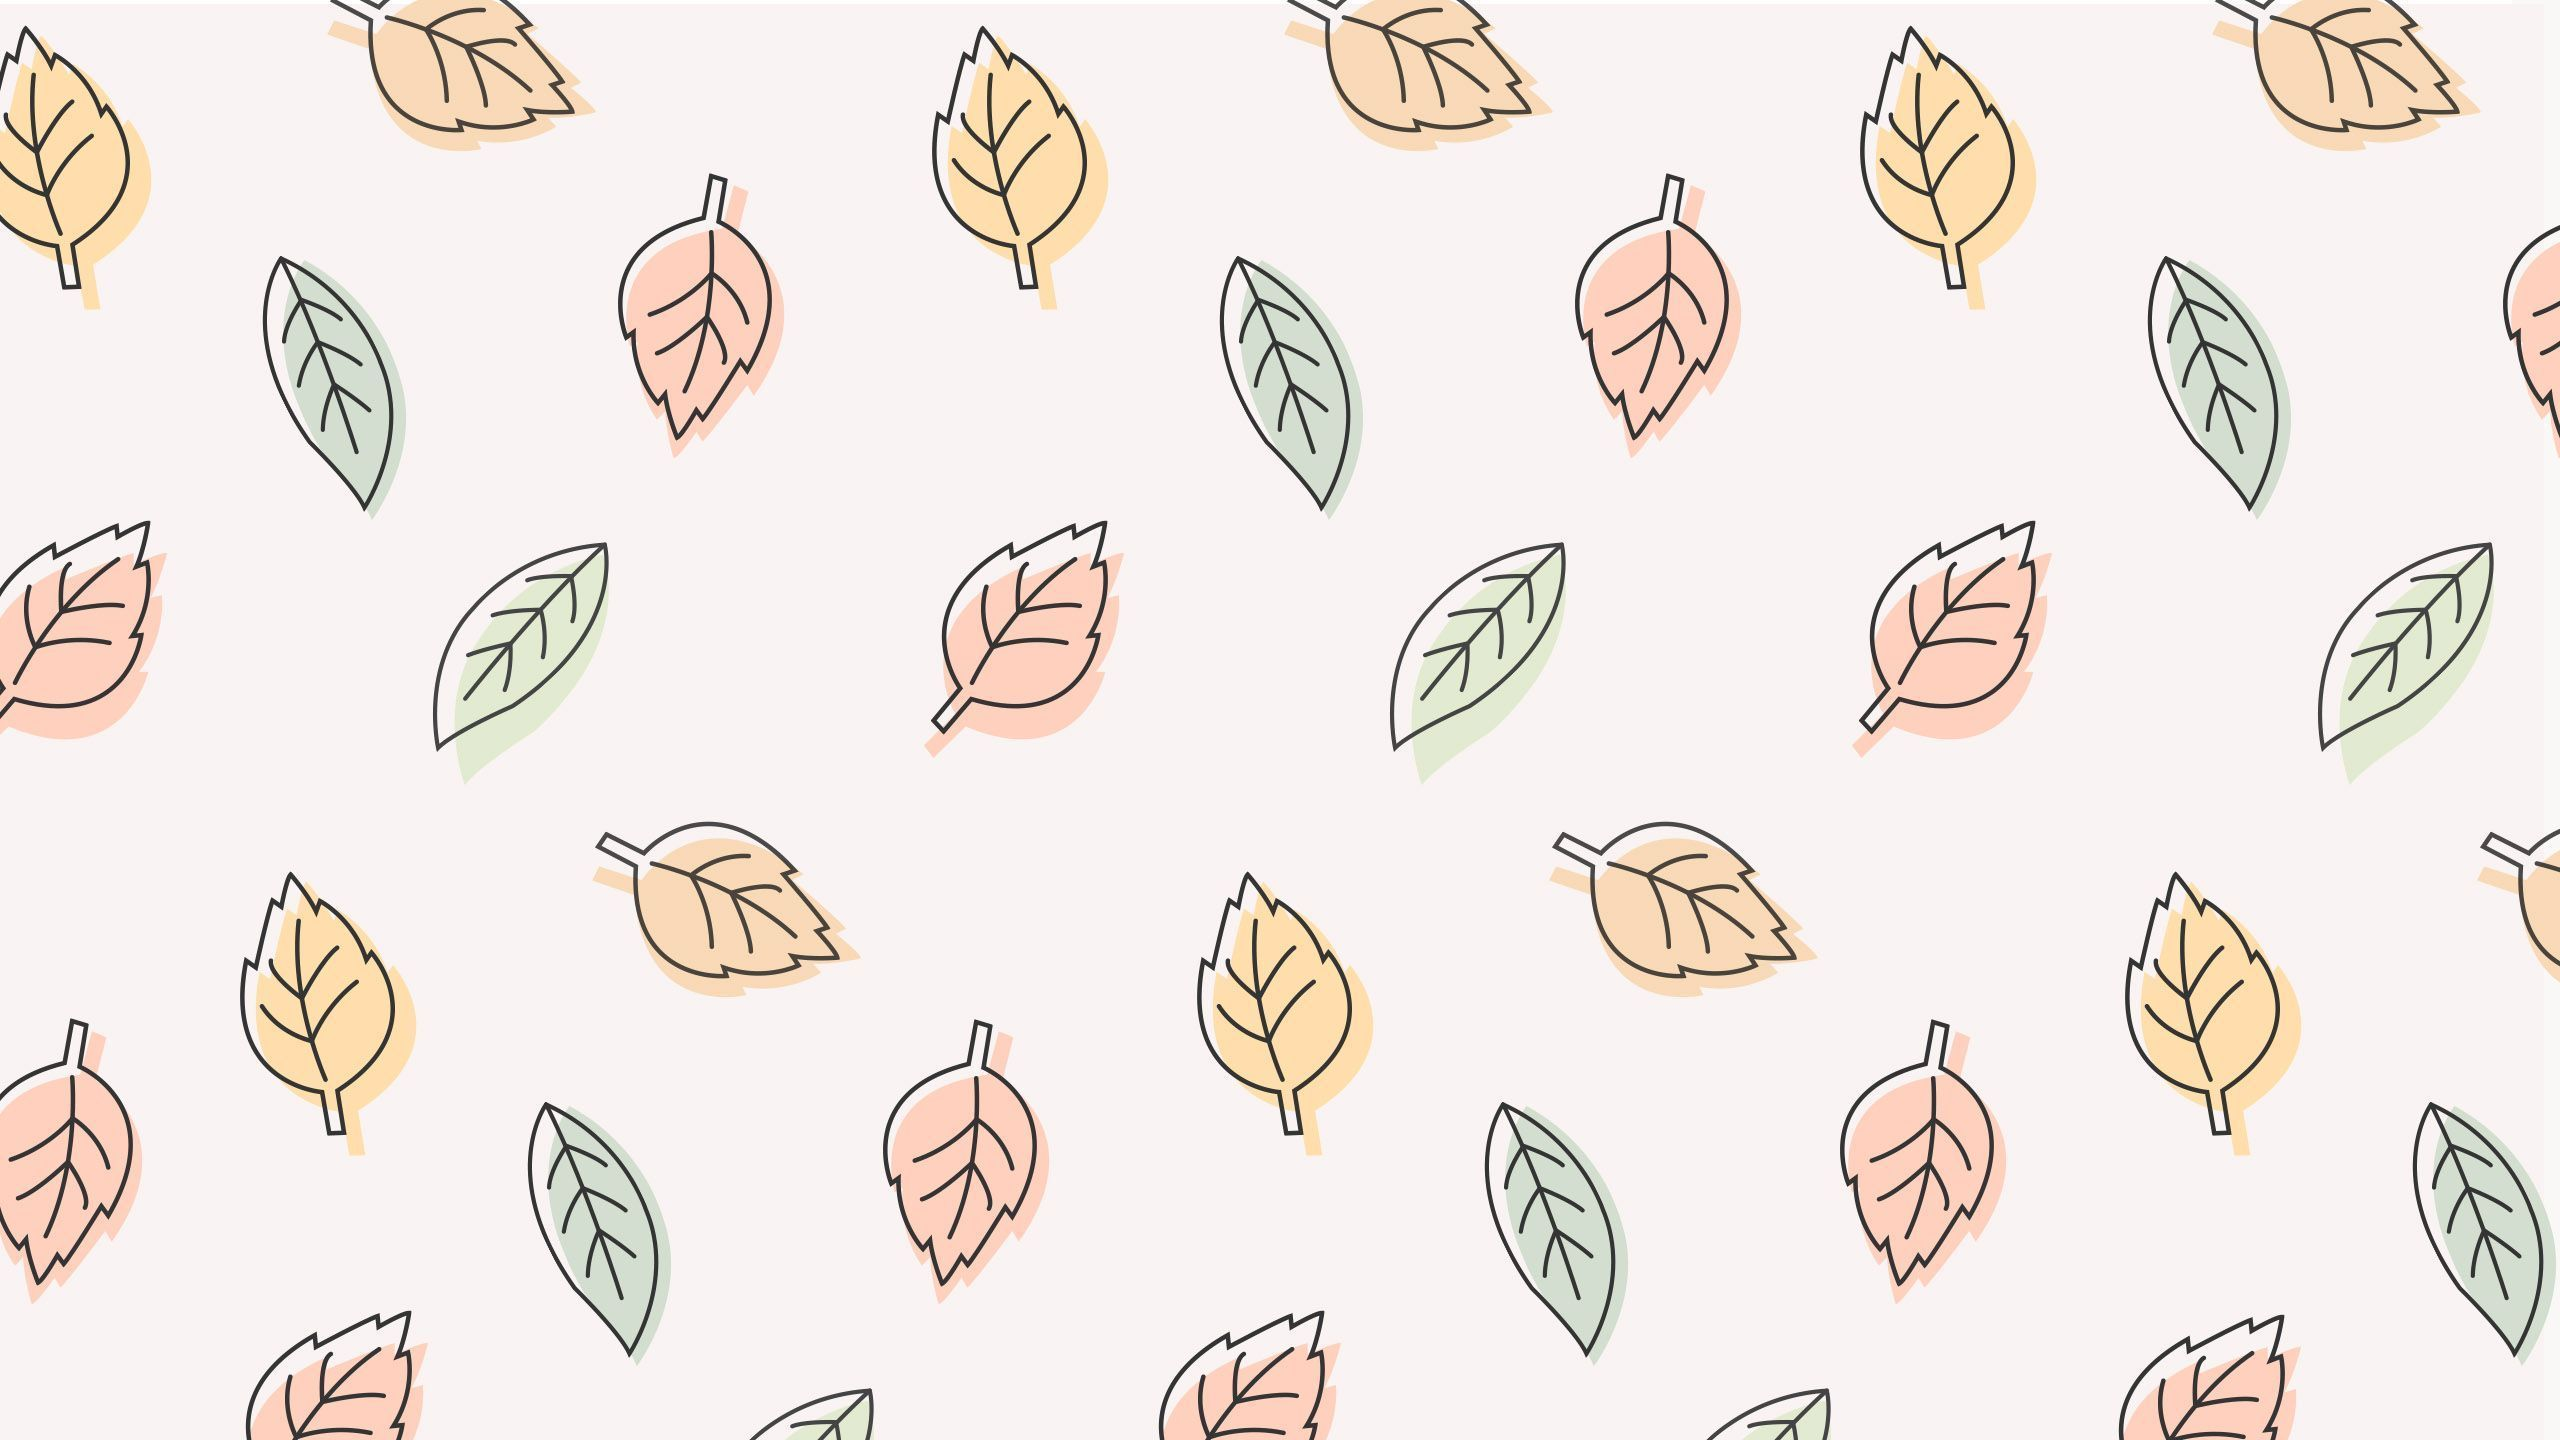 Fall Wallpaper Aesthetic Computer Mywallpapers Site In 2020 Computer Wallpaper Desktop Wallpapers Cute Desktop Wallpaper Cute Laptop Wallpaper